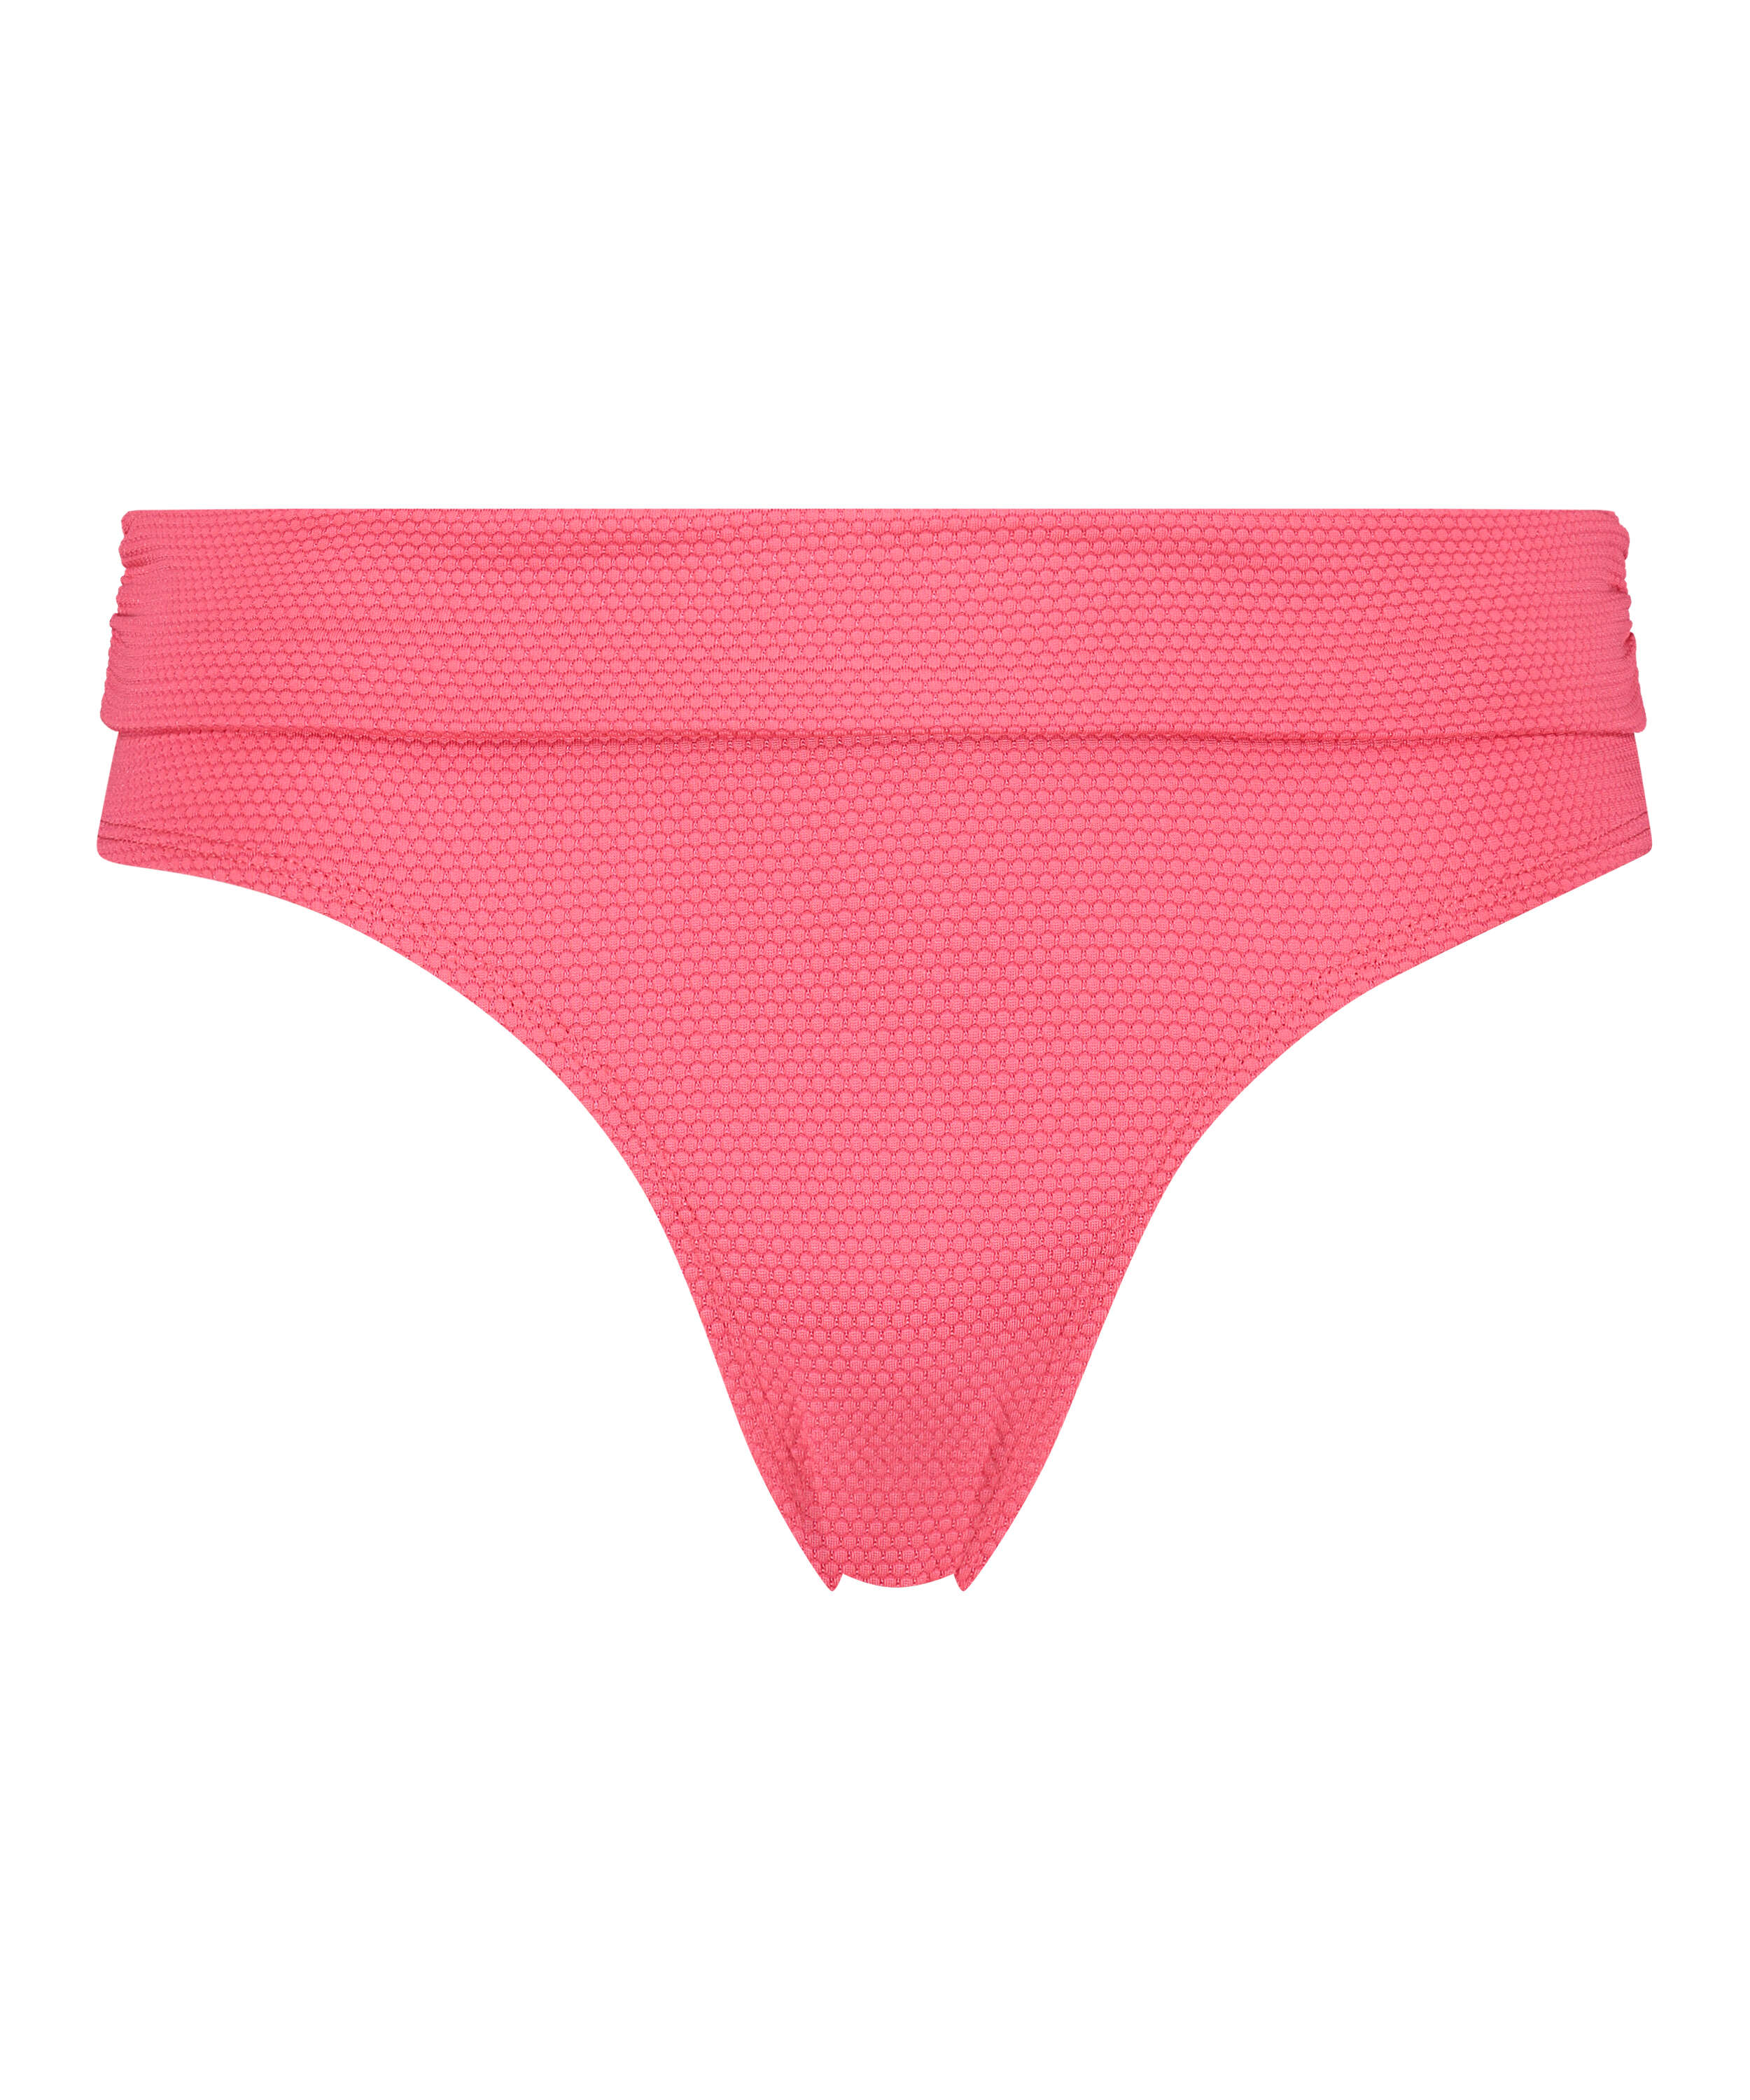 Ruffle Dreams high bikini bottoms, Pink, main